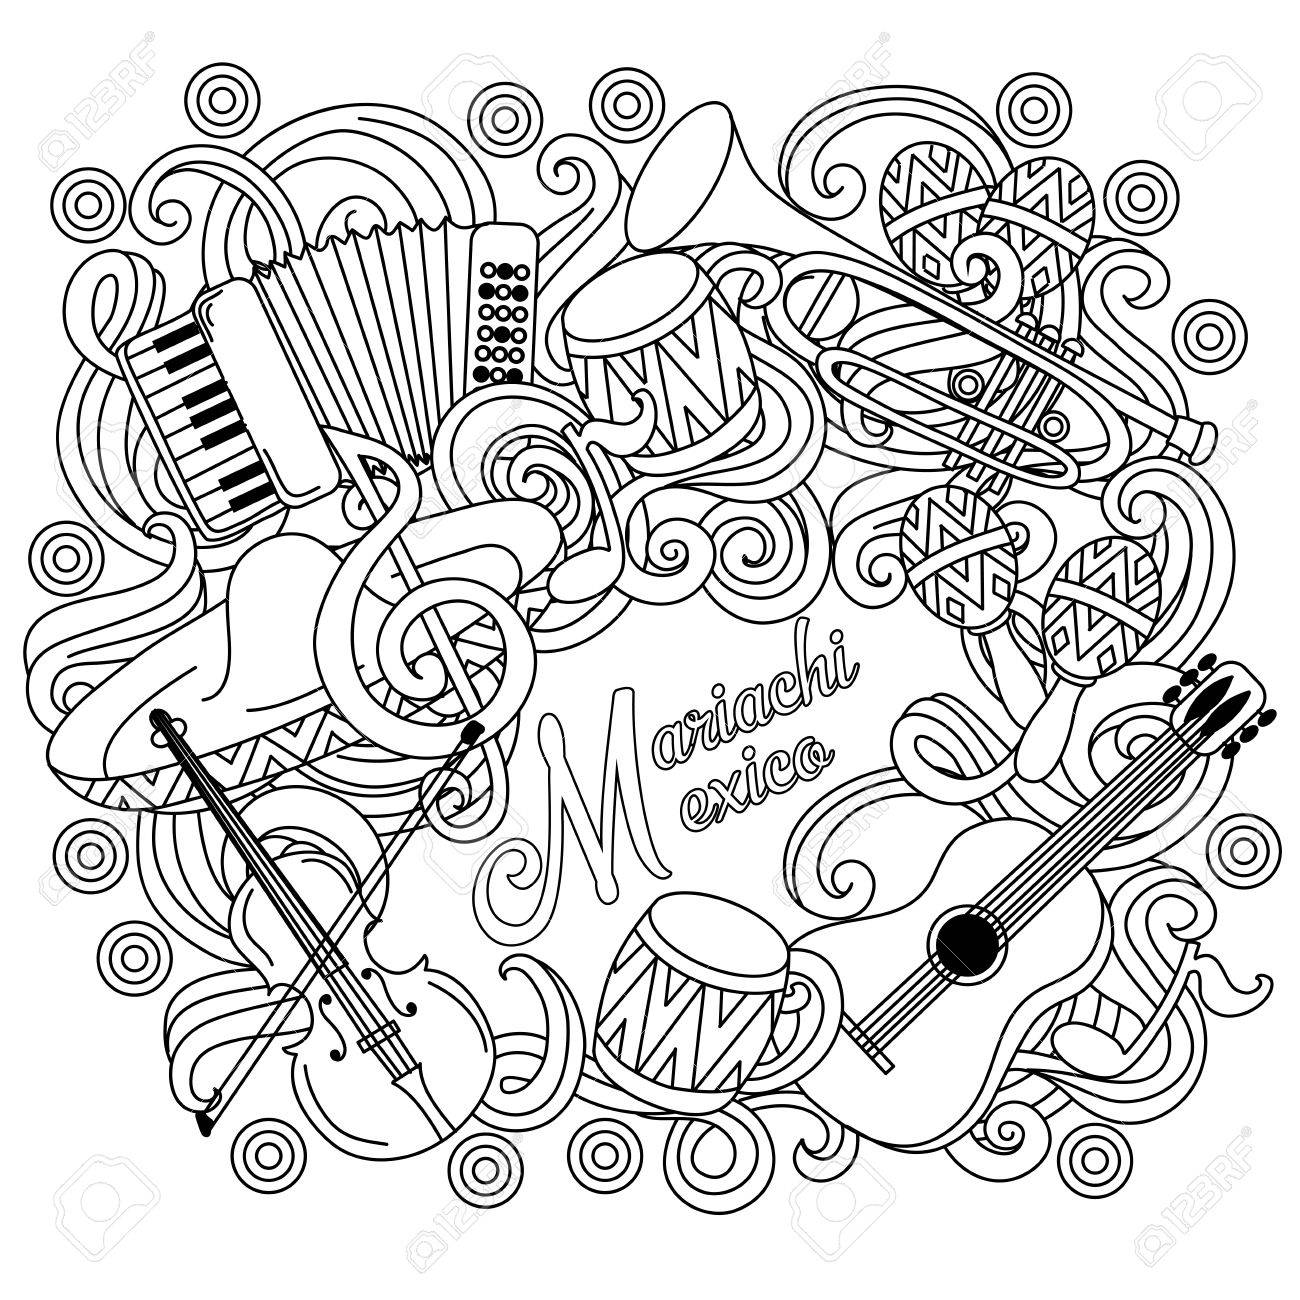 1300x1300 Mariachi Mexico Festive Sketch Background. Cartoon Vector Hand